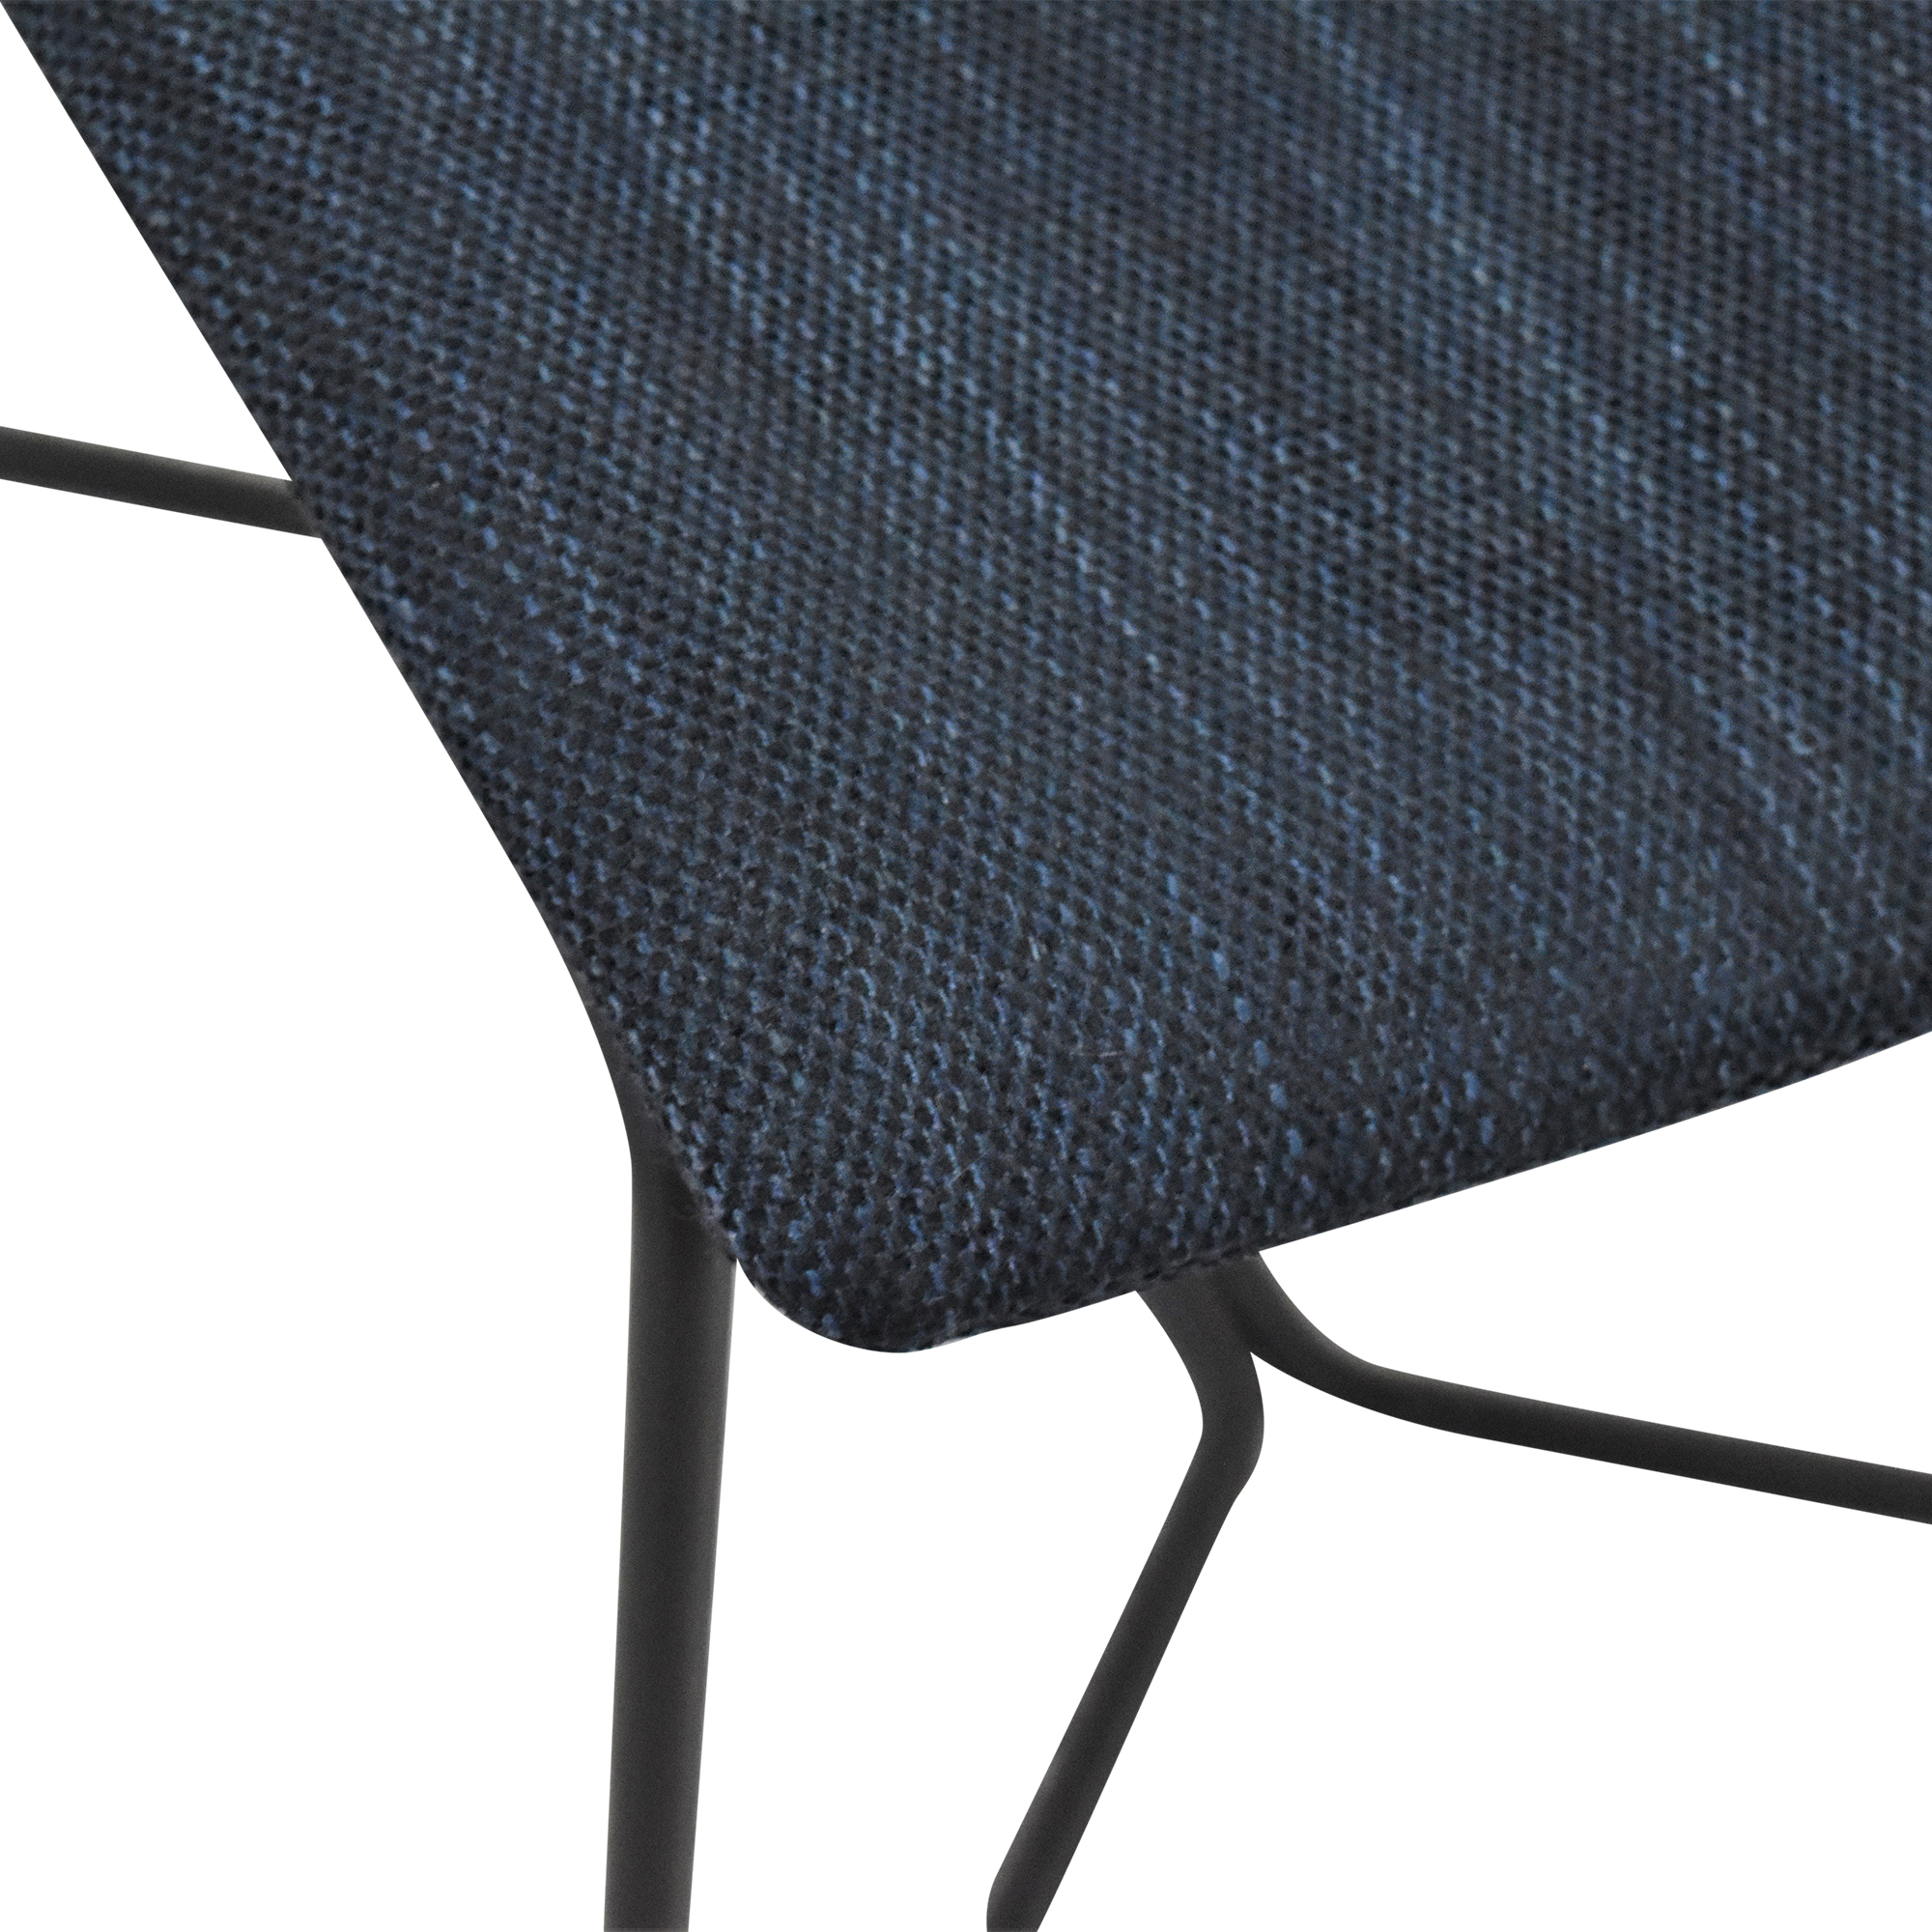 West Elm West Elm Slope Upholstered Dining Chairs used